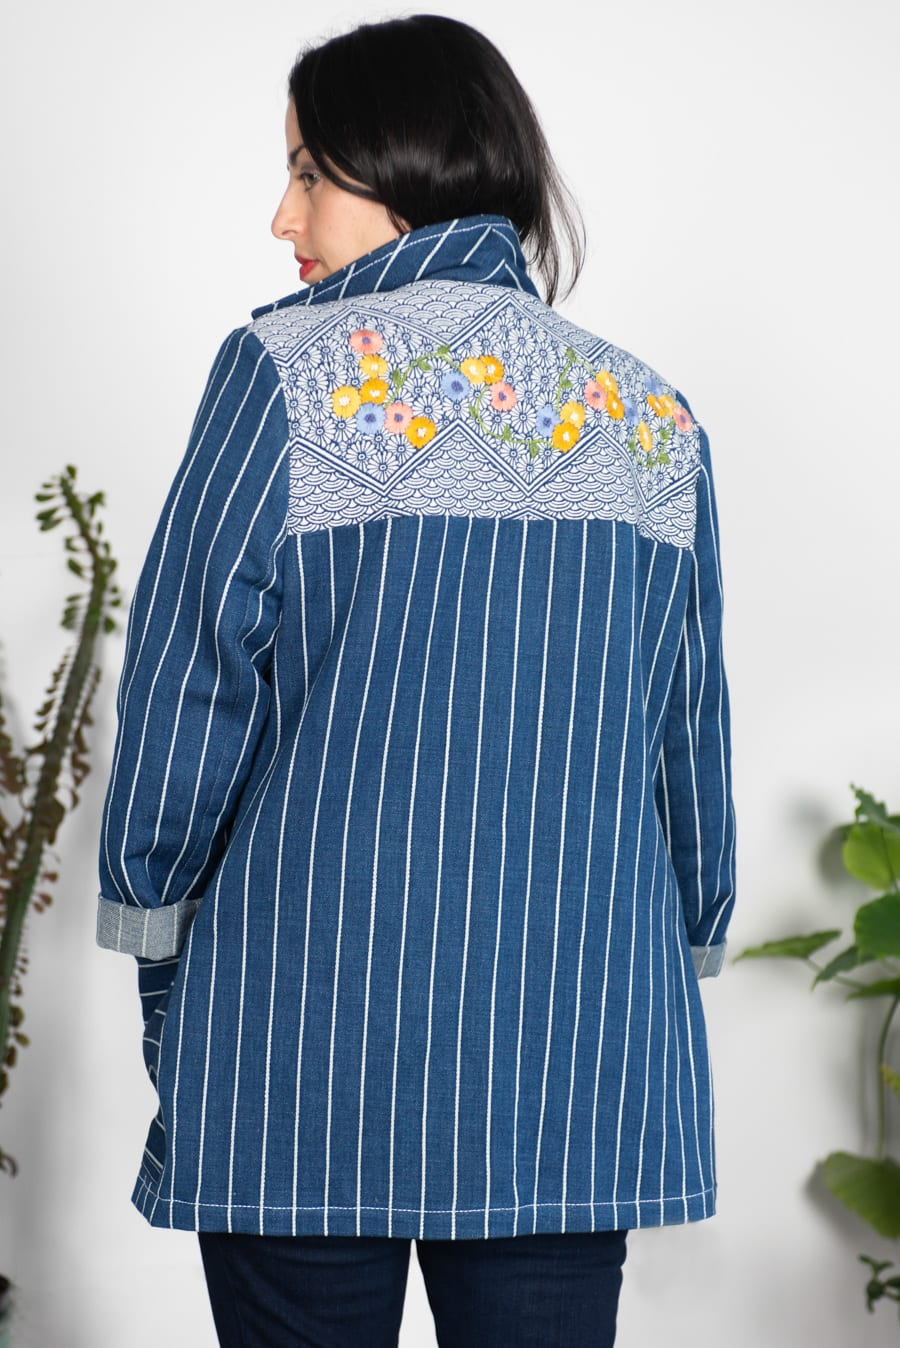 Heather's Sienna Maker Jacket with embroidered yoke // Handmade by Closet Case Patterns